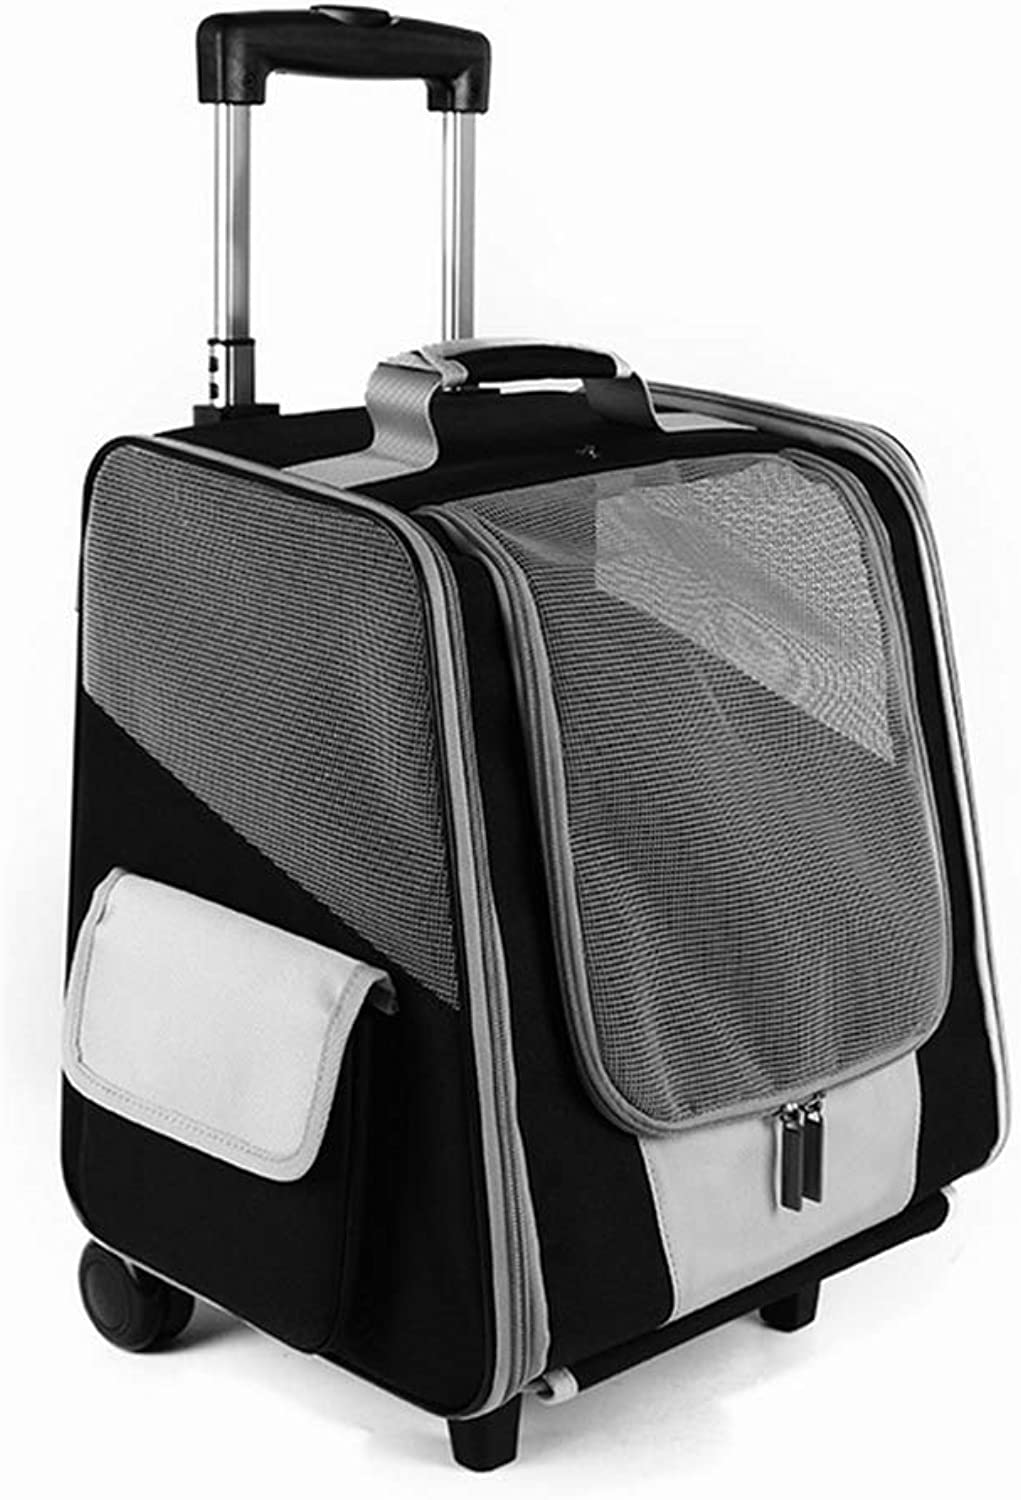 Pet Trolley Case Large Folding Pets Carrier Travel Bag, Pets up to 7.5kg(Dog) Can be Used as a Handbag, Backpack Pull Rod 93cm